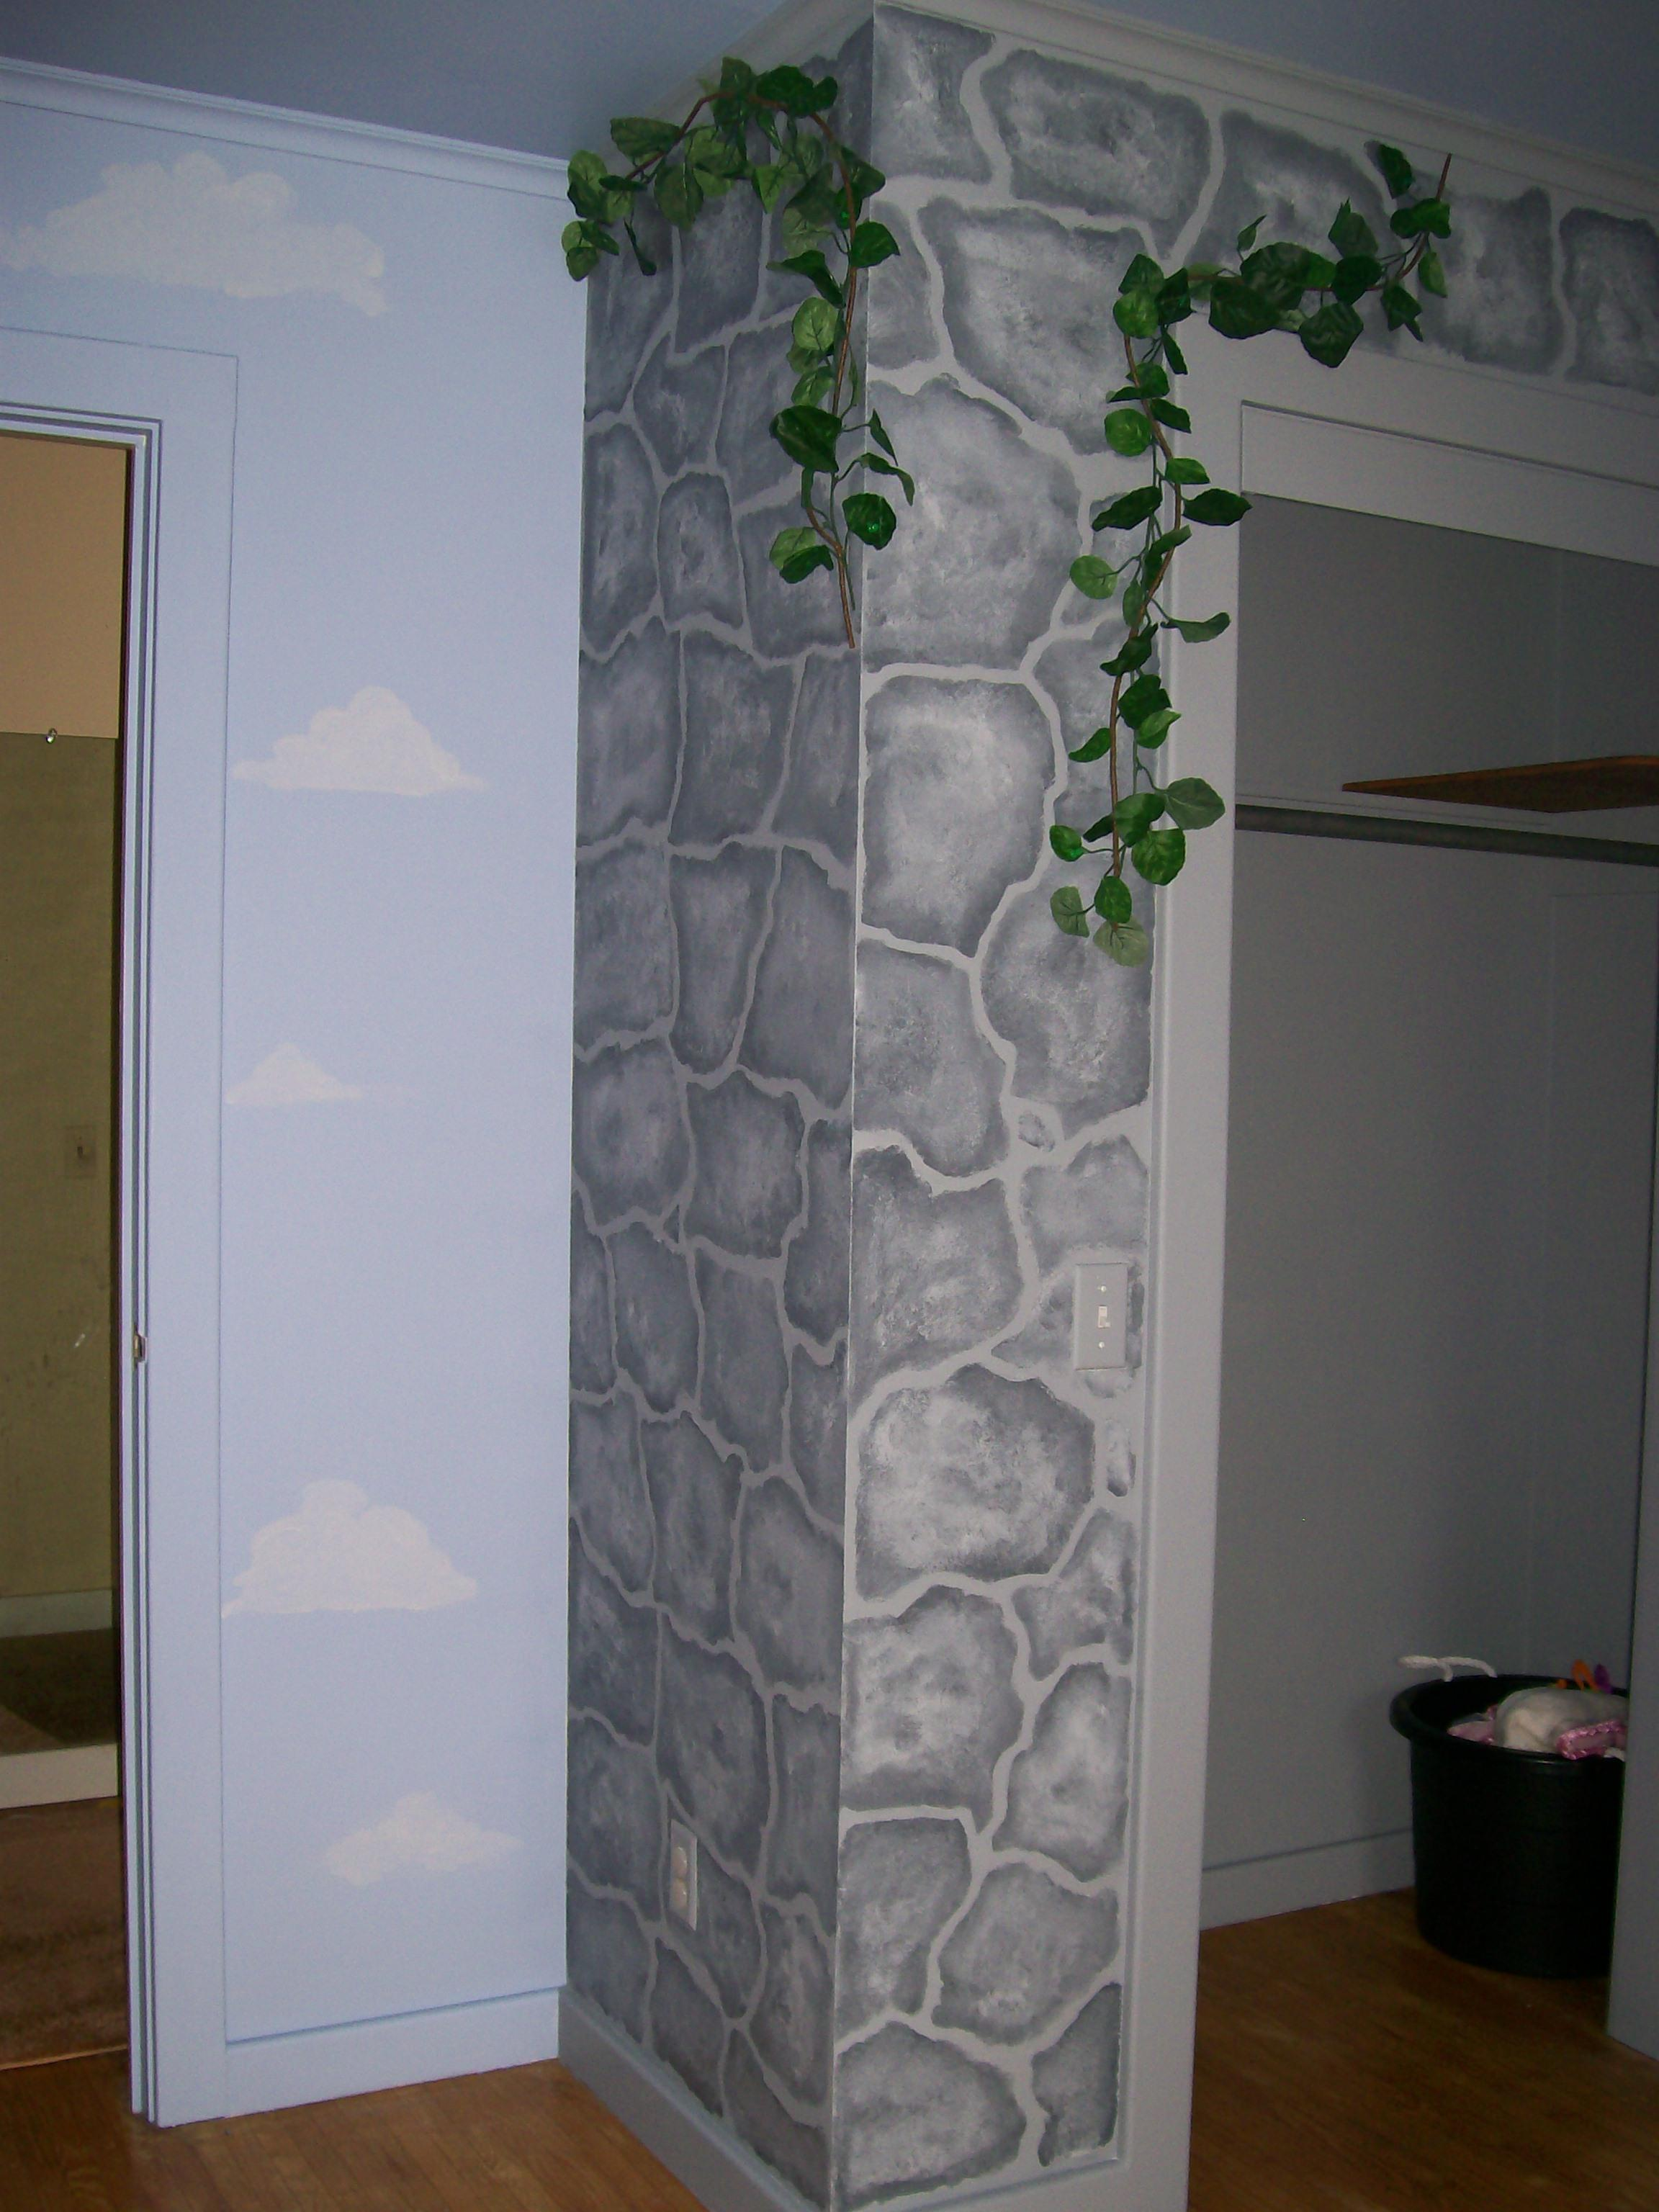 Faux painting frugal frights and delights for How to paint faux marble wall